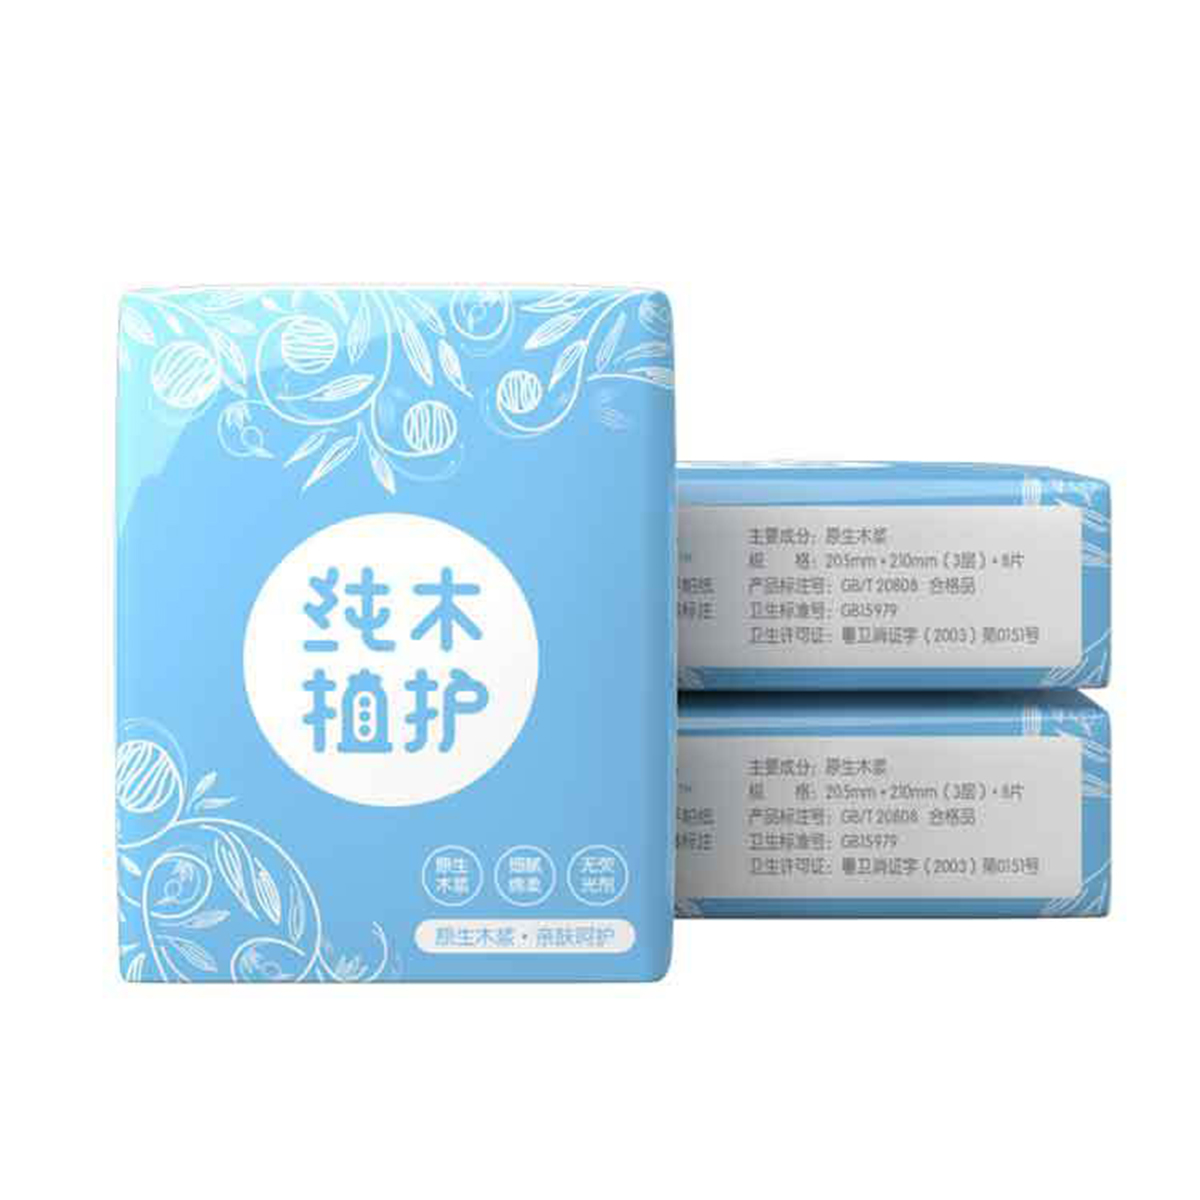 10 Pack Mini Portable Handkerchief Paper Pocket Tissue 3-ply Wood Pulp Travel Tourism Paper Tissue 8 Sheets